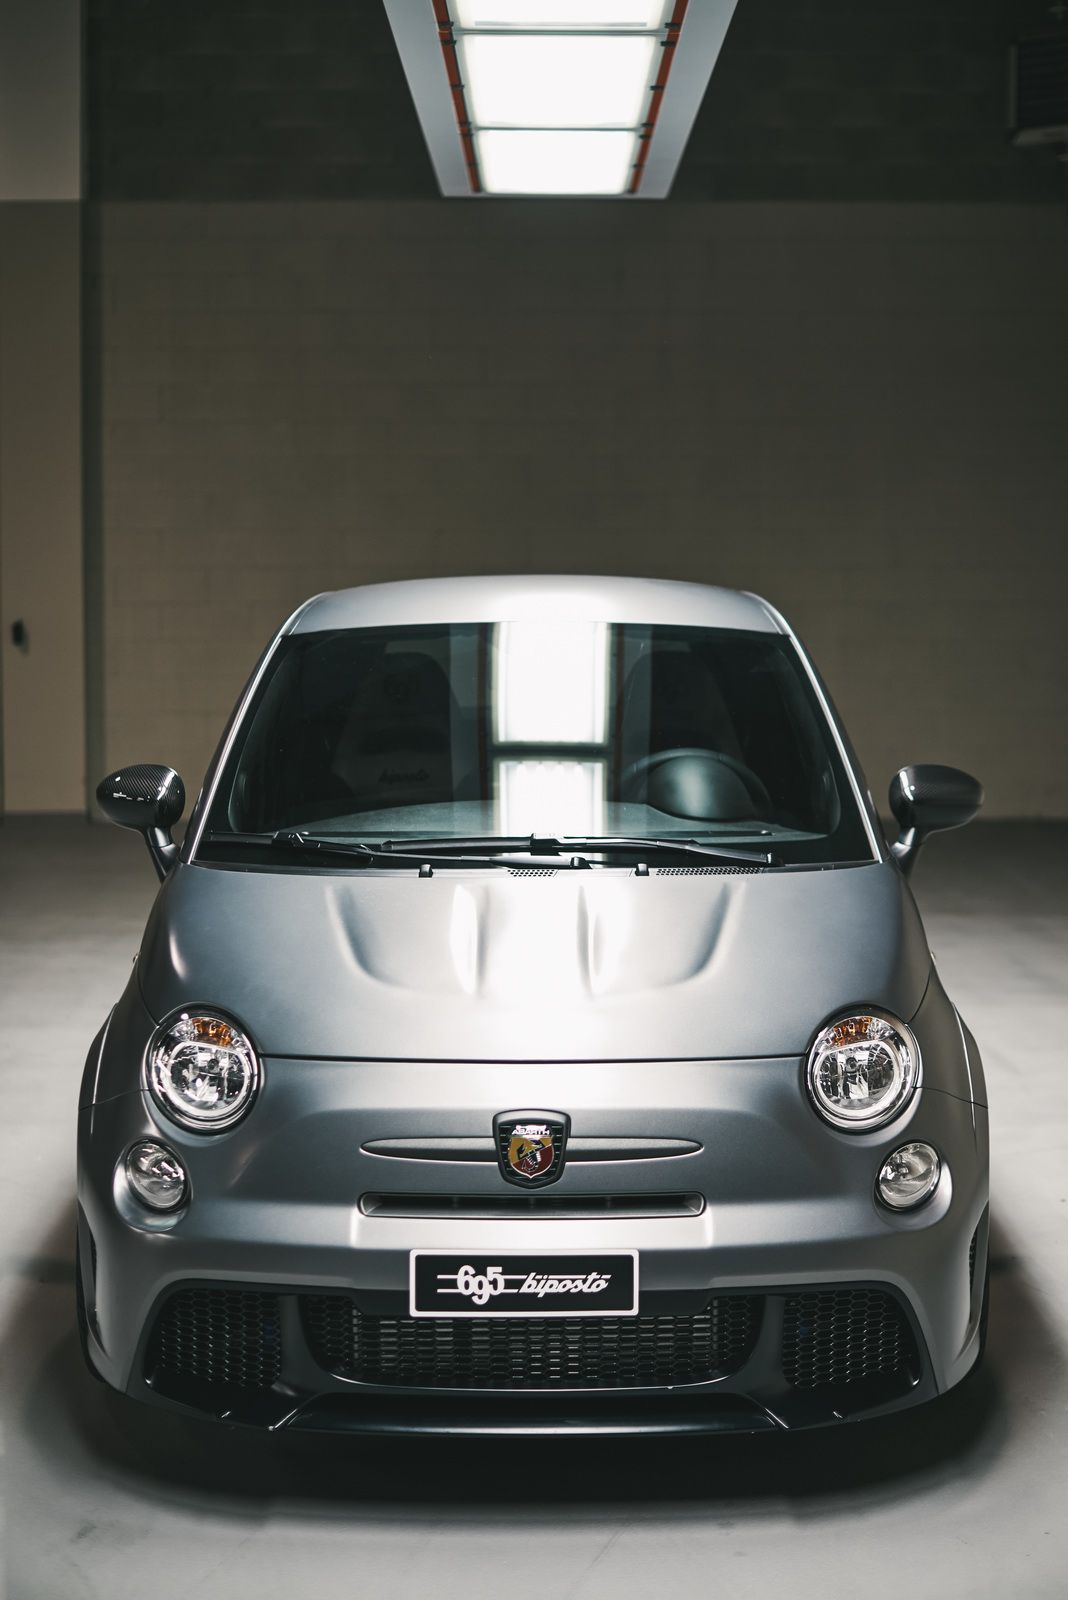 Orders For Abarth S 695 Biposto Far Exceed Production Capacity 70 Photos Carscoops Fiat Cars Fiat 500 Fiat Abarth